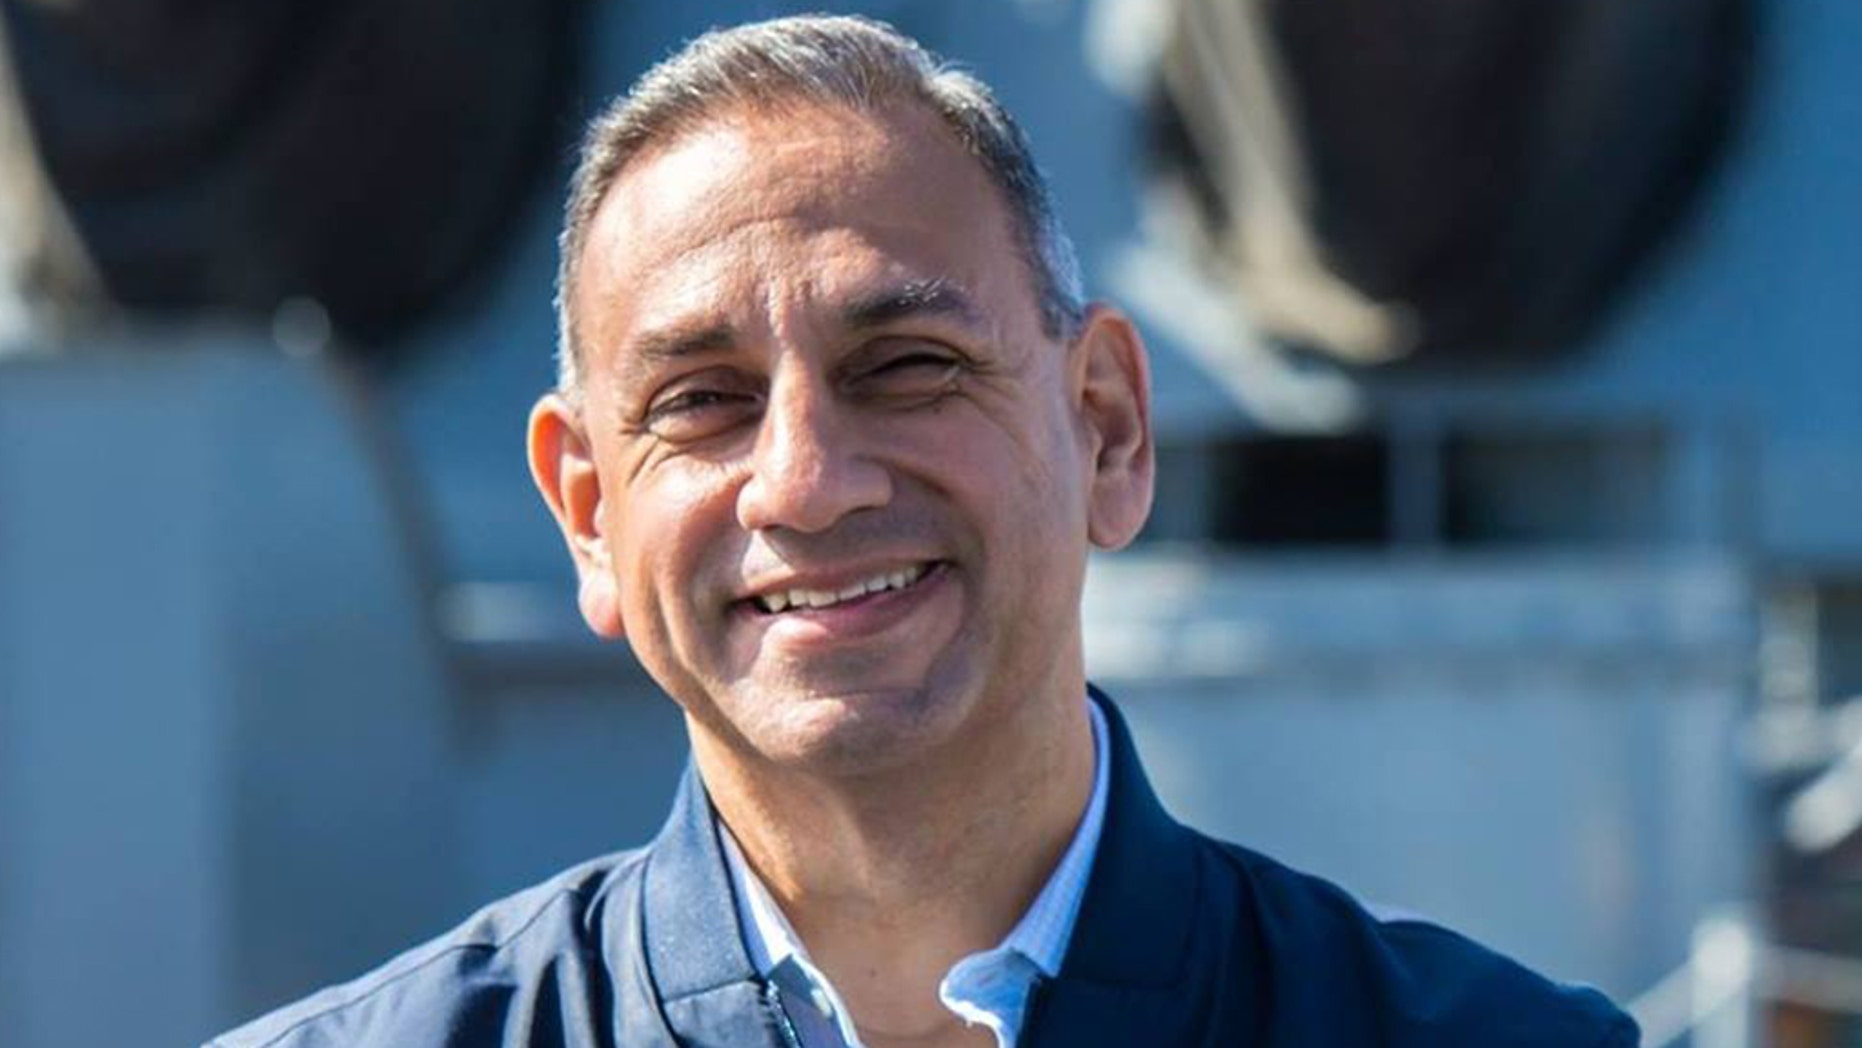 A woman who accussed California congressional hopeful Gil Cisneros of sexual harassment said she is recanting the allegations after meeting with him.